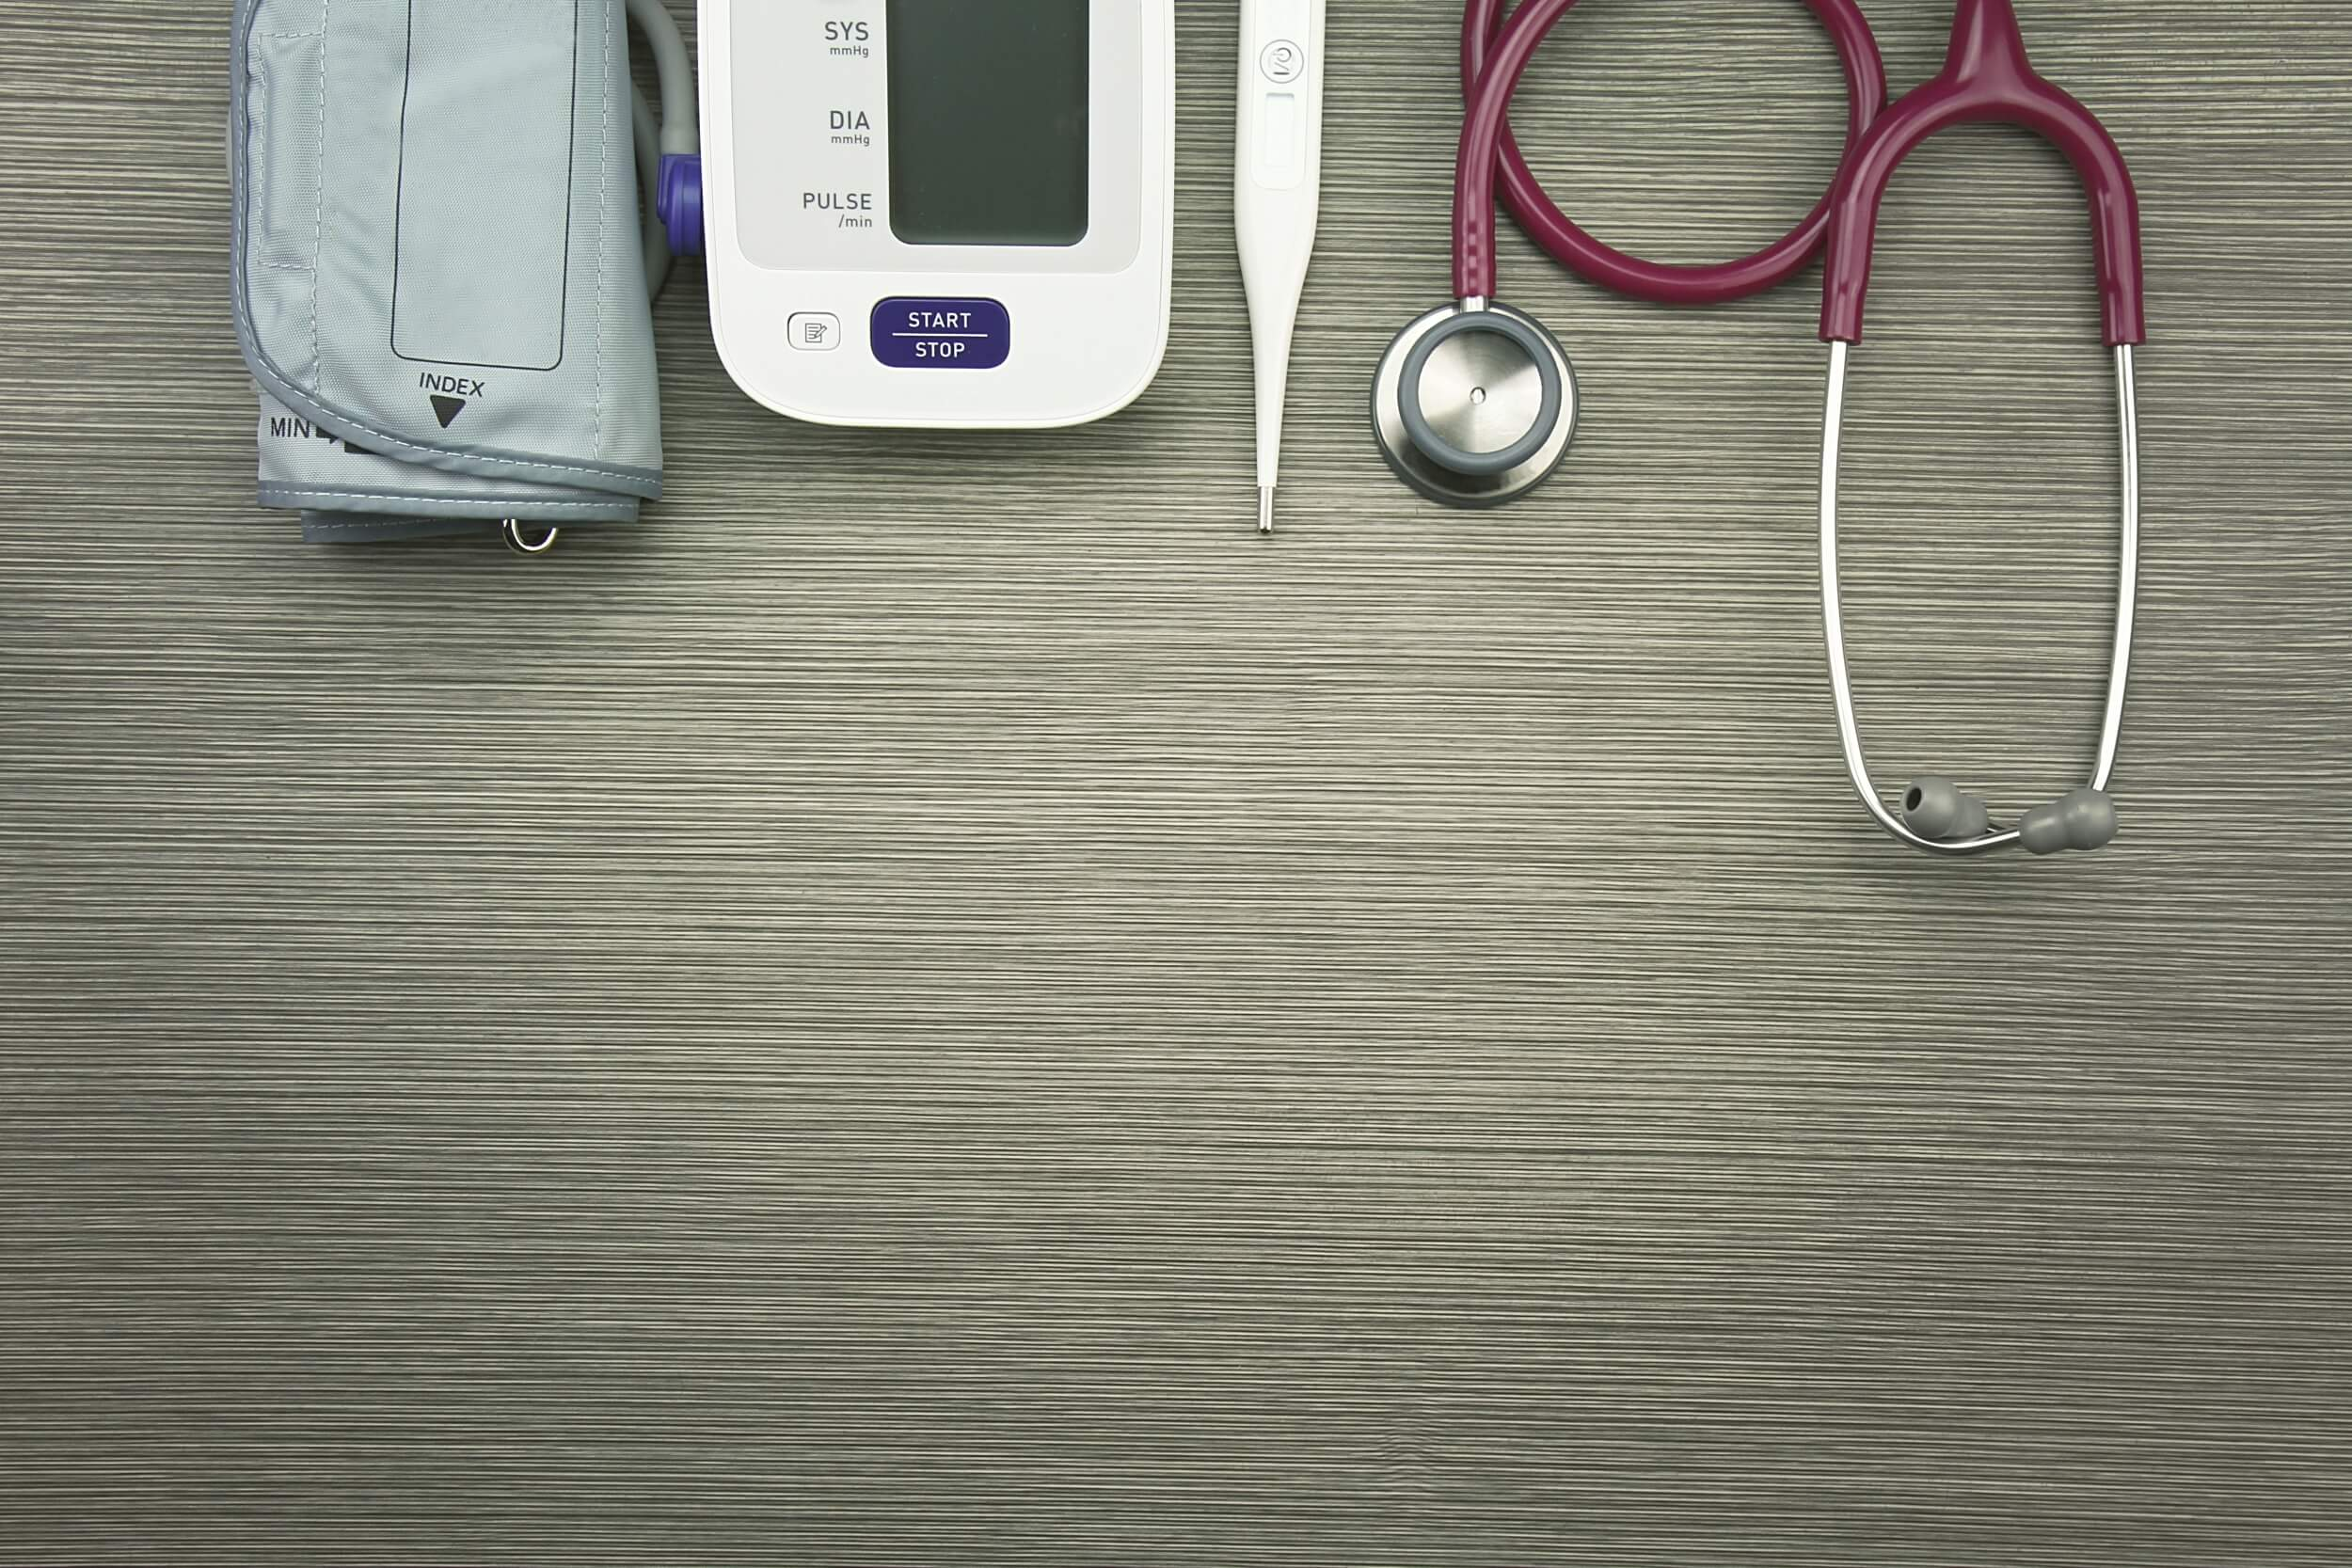 Medical instruments on a table - Heart Pressure Monitor and more